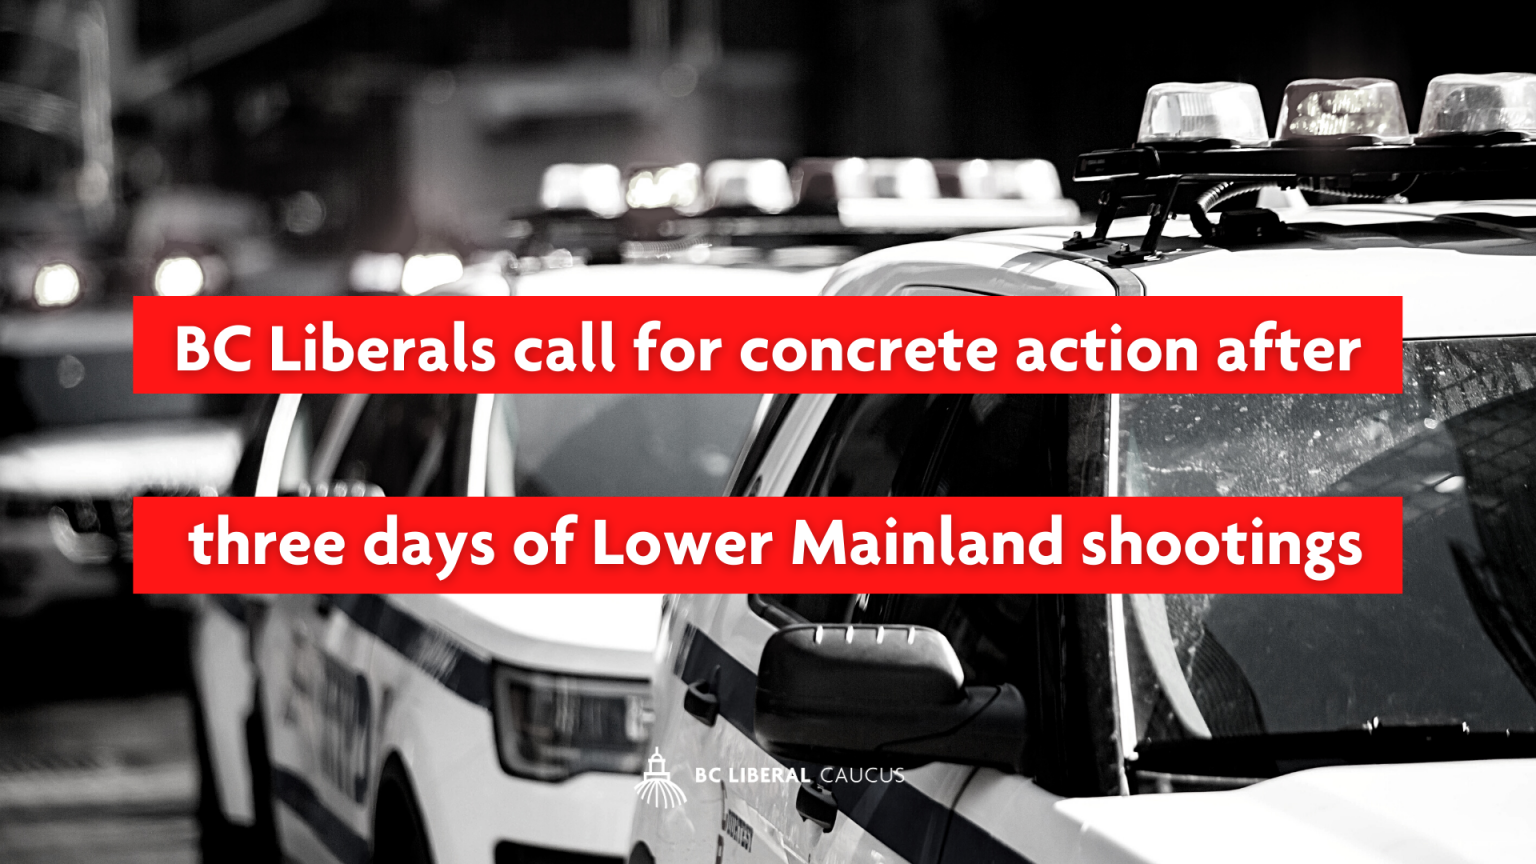 BC Liberals call for concrete action after three days of Lower Mainland shootings